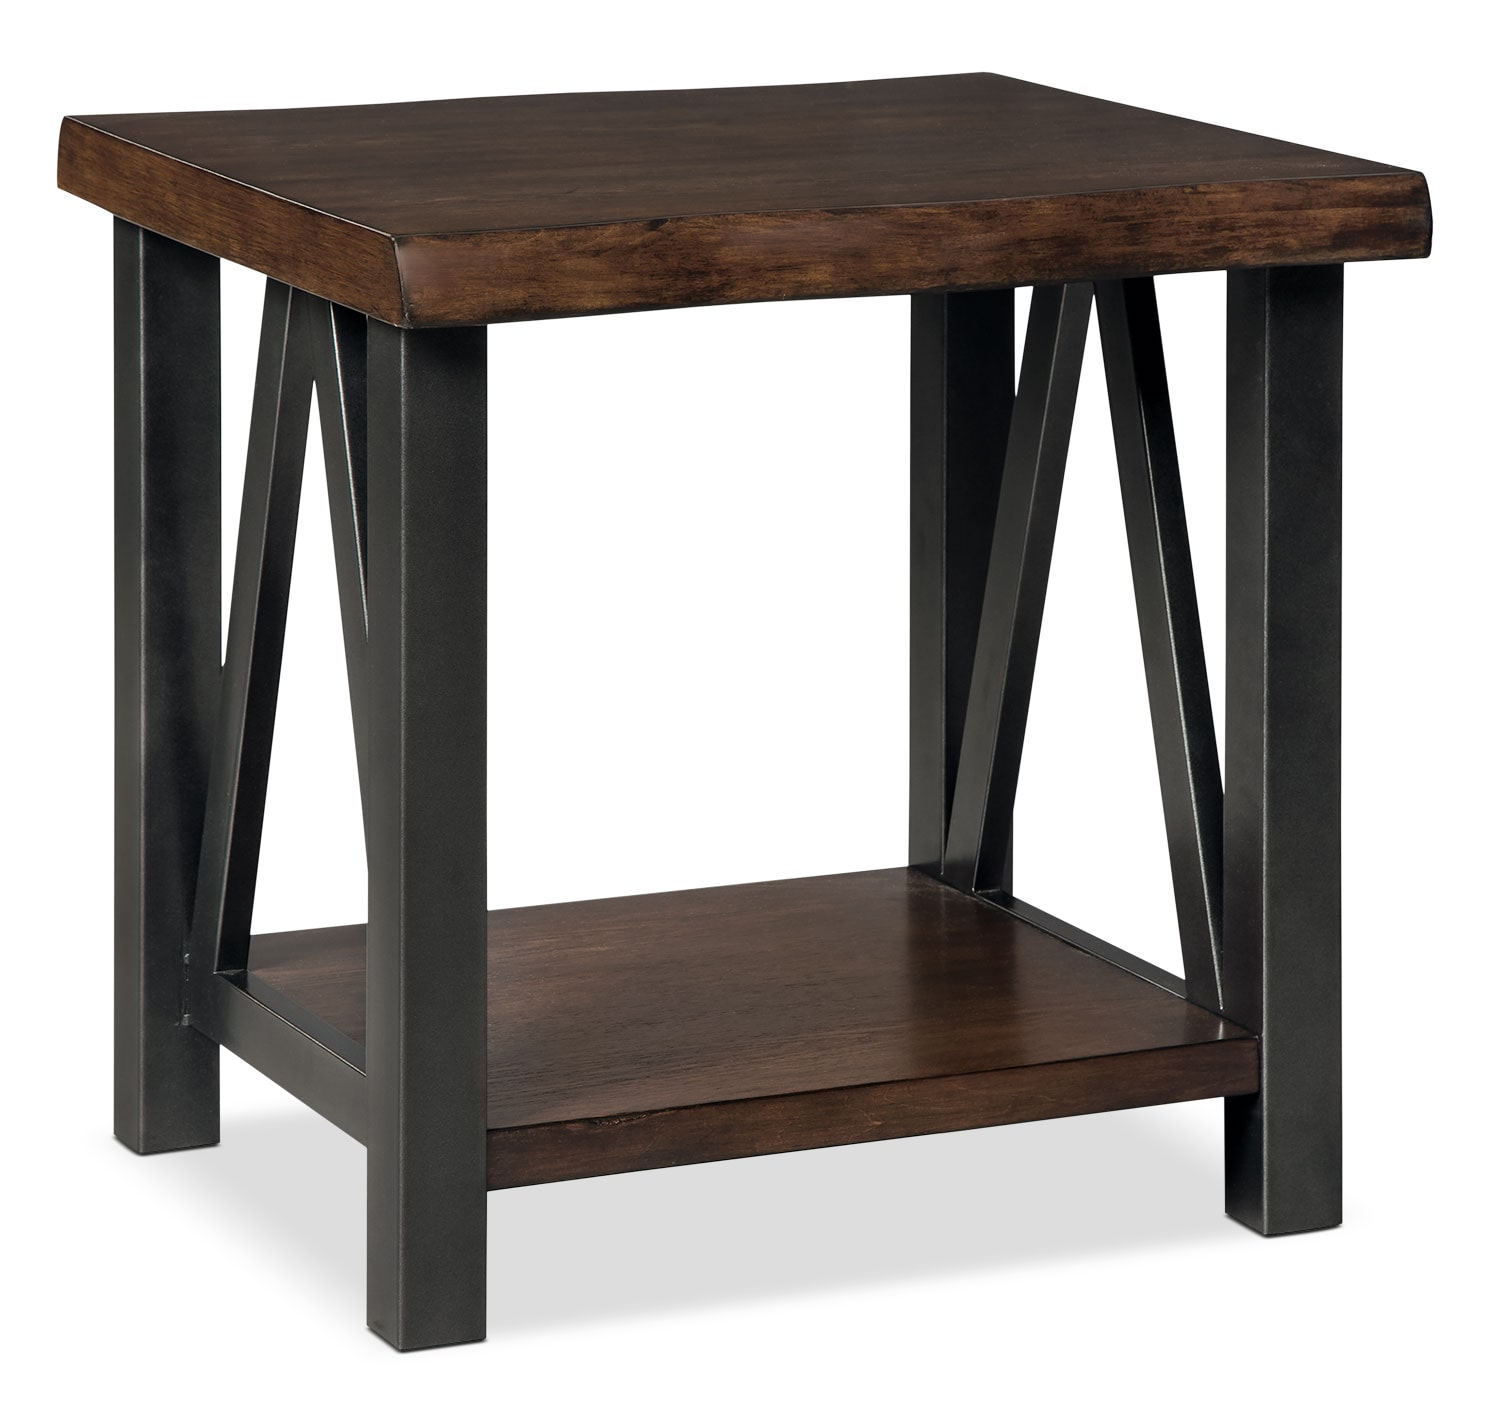 Esmarina end table the brick Coffee and accent tables